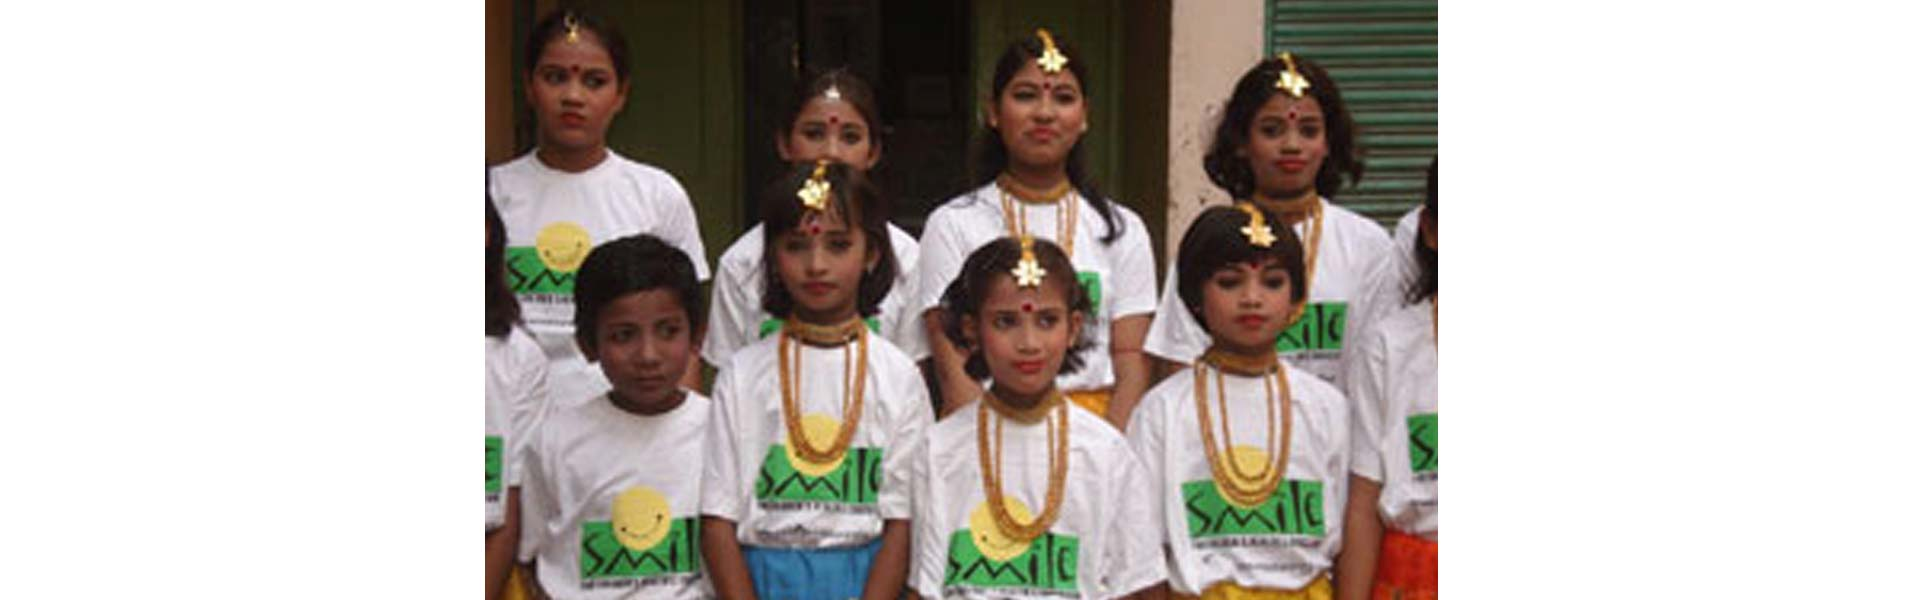 RPG day at Kolkata brings smile to the underprivileged children 